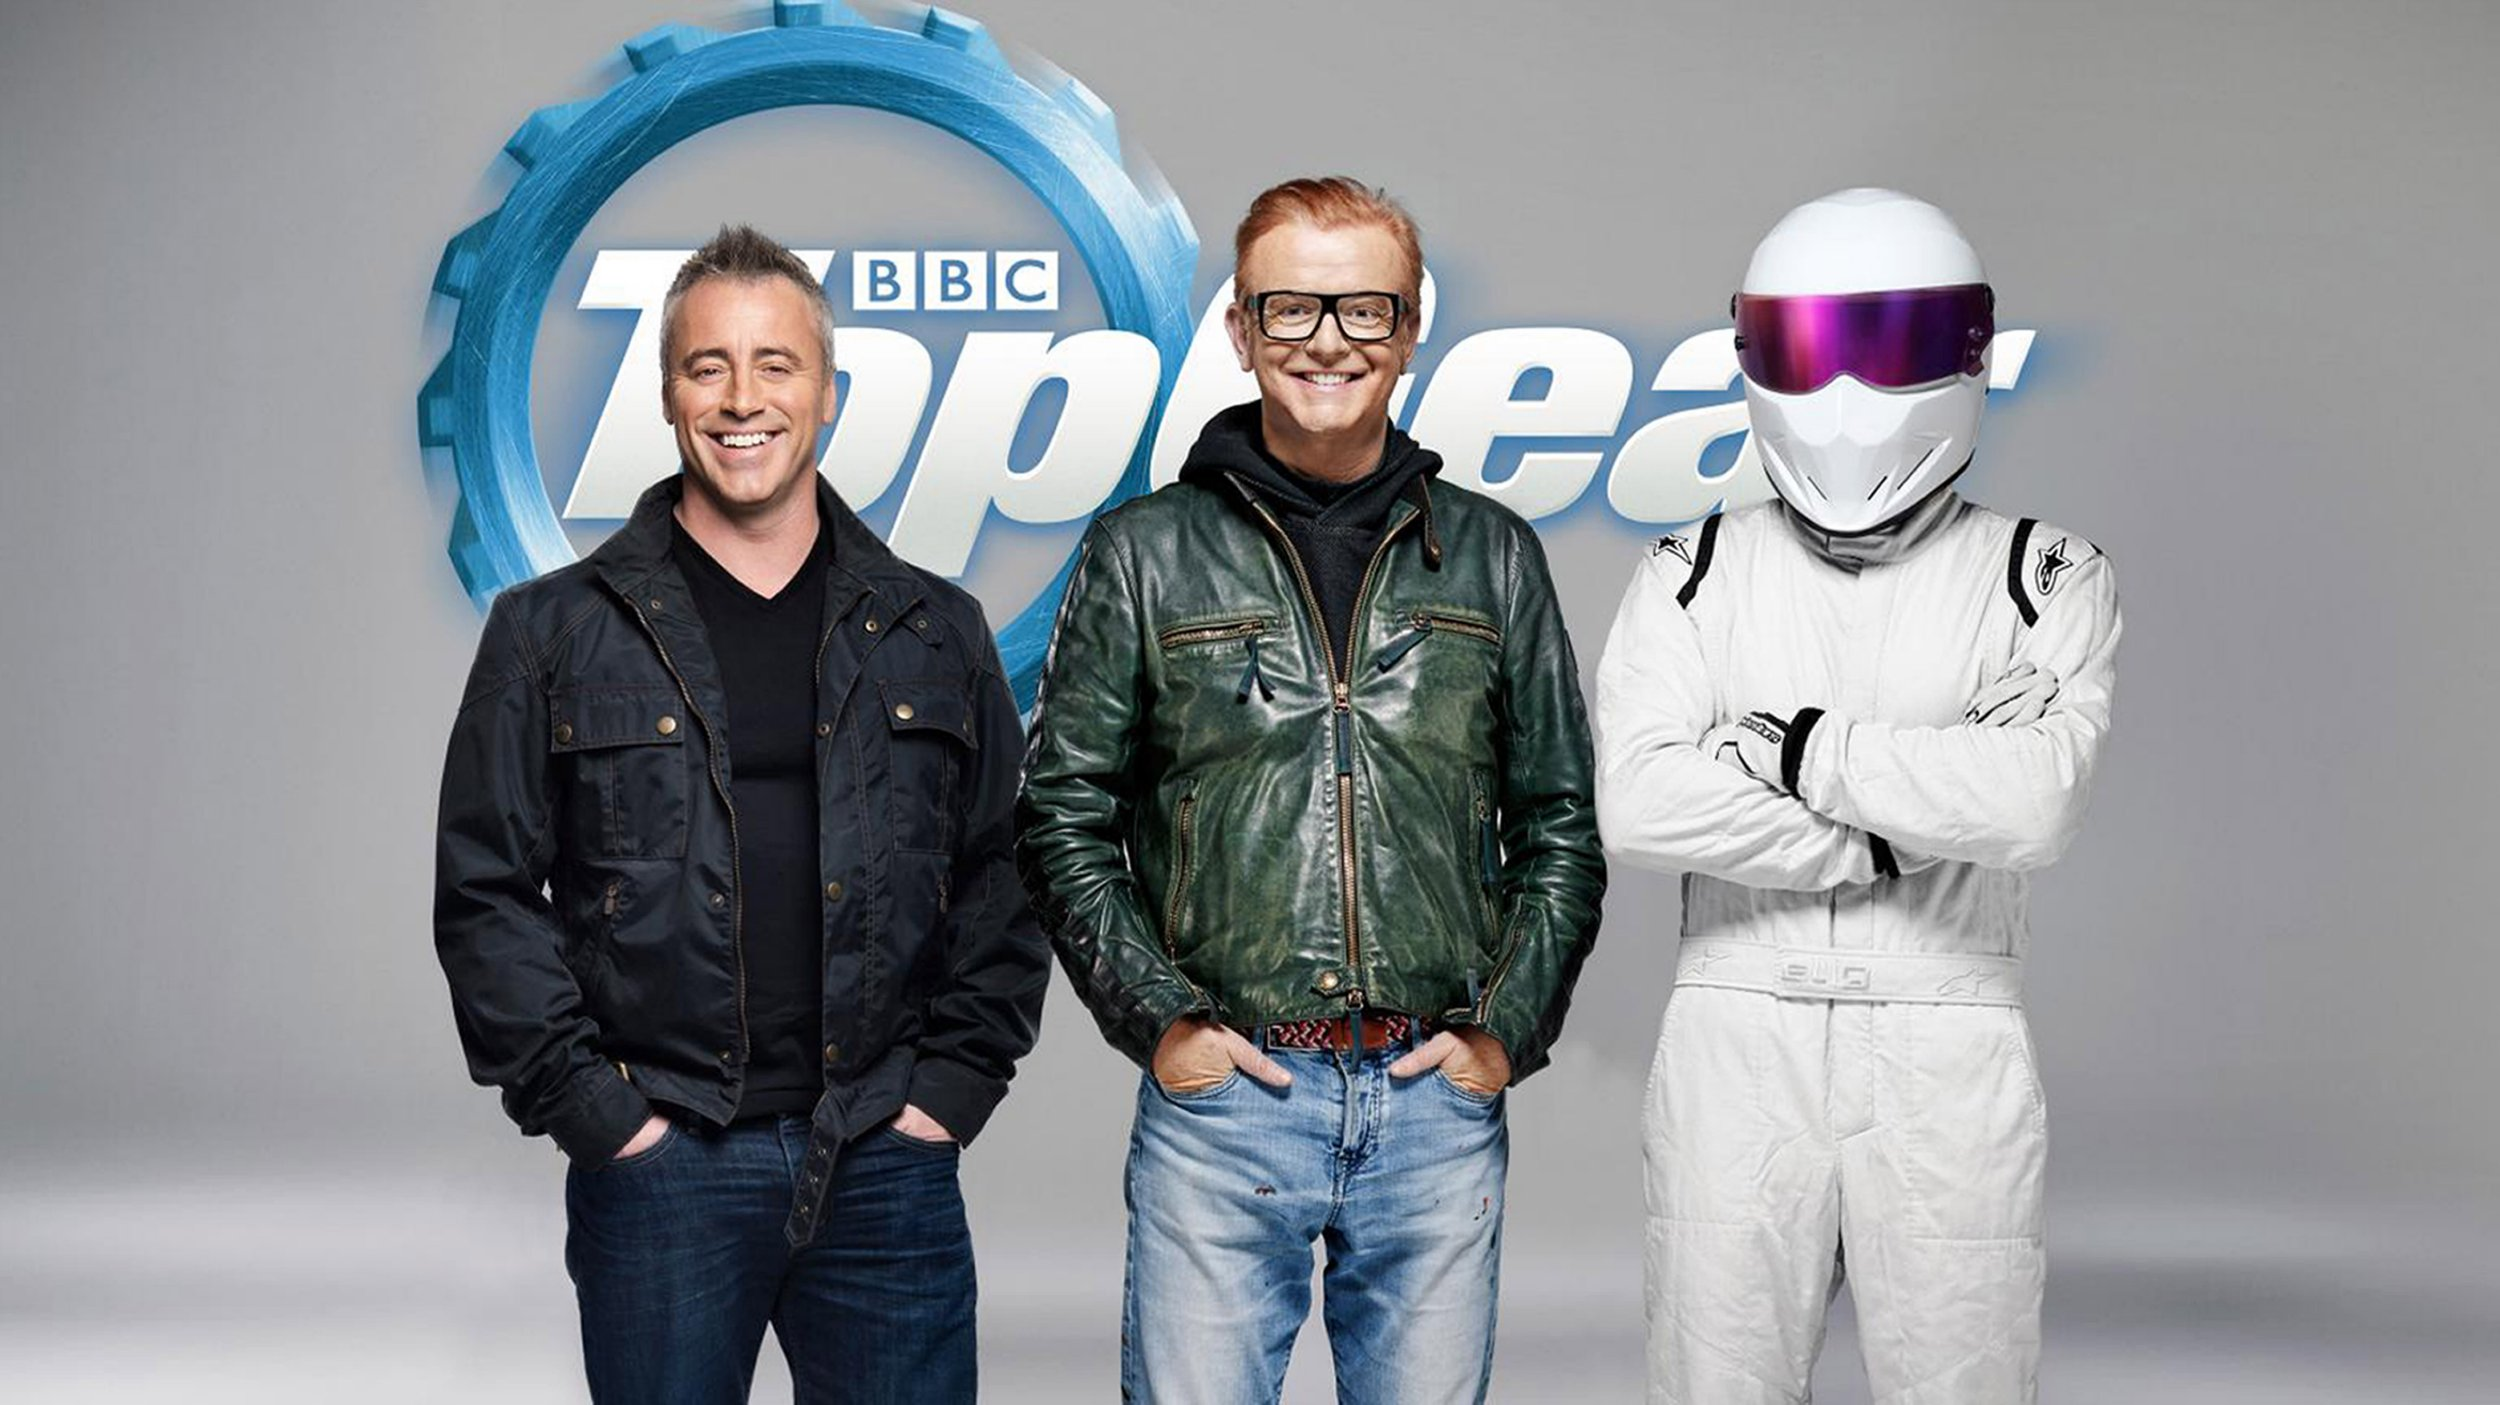 "Former Friends star Matt LeBlanc is be one of the new presenters of Top Gear when the motoring programme returns to BBC Two in May. The US actor will be the show's first non-British host in its 39-year history. ""Matt's a lifelong fellow petrolhead and I'm thrilled he's joining Top Gear,"" said Chris Evans of his new co-host. Picture: BBC/ Universal News And Sport (Europe) 04/02/2016."